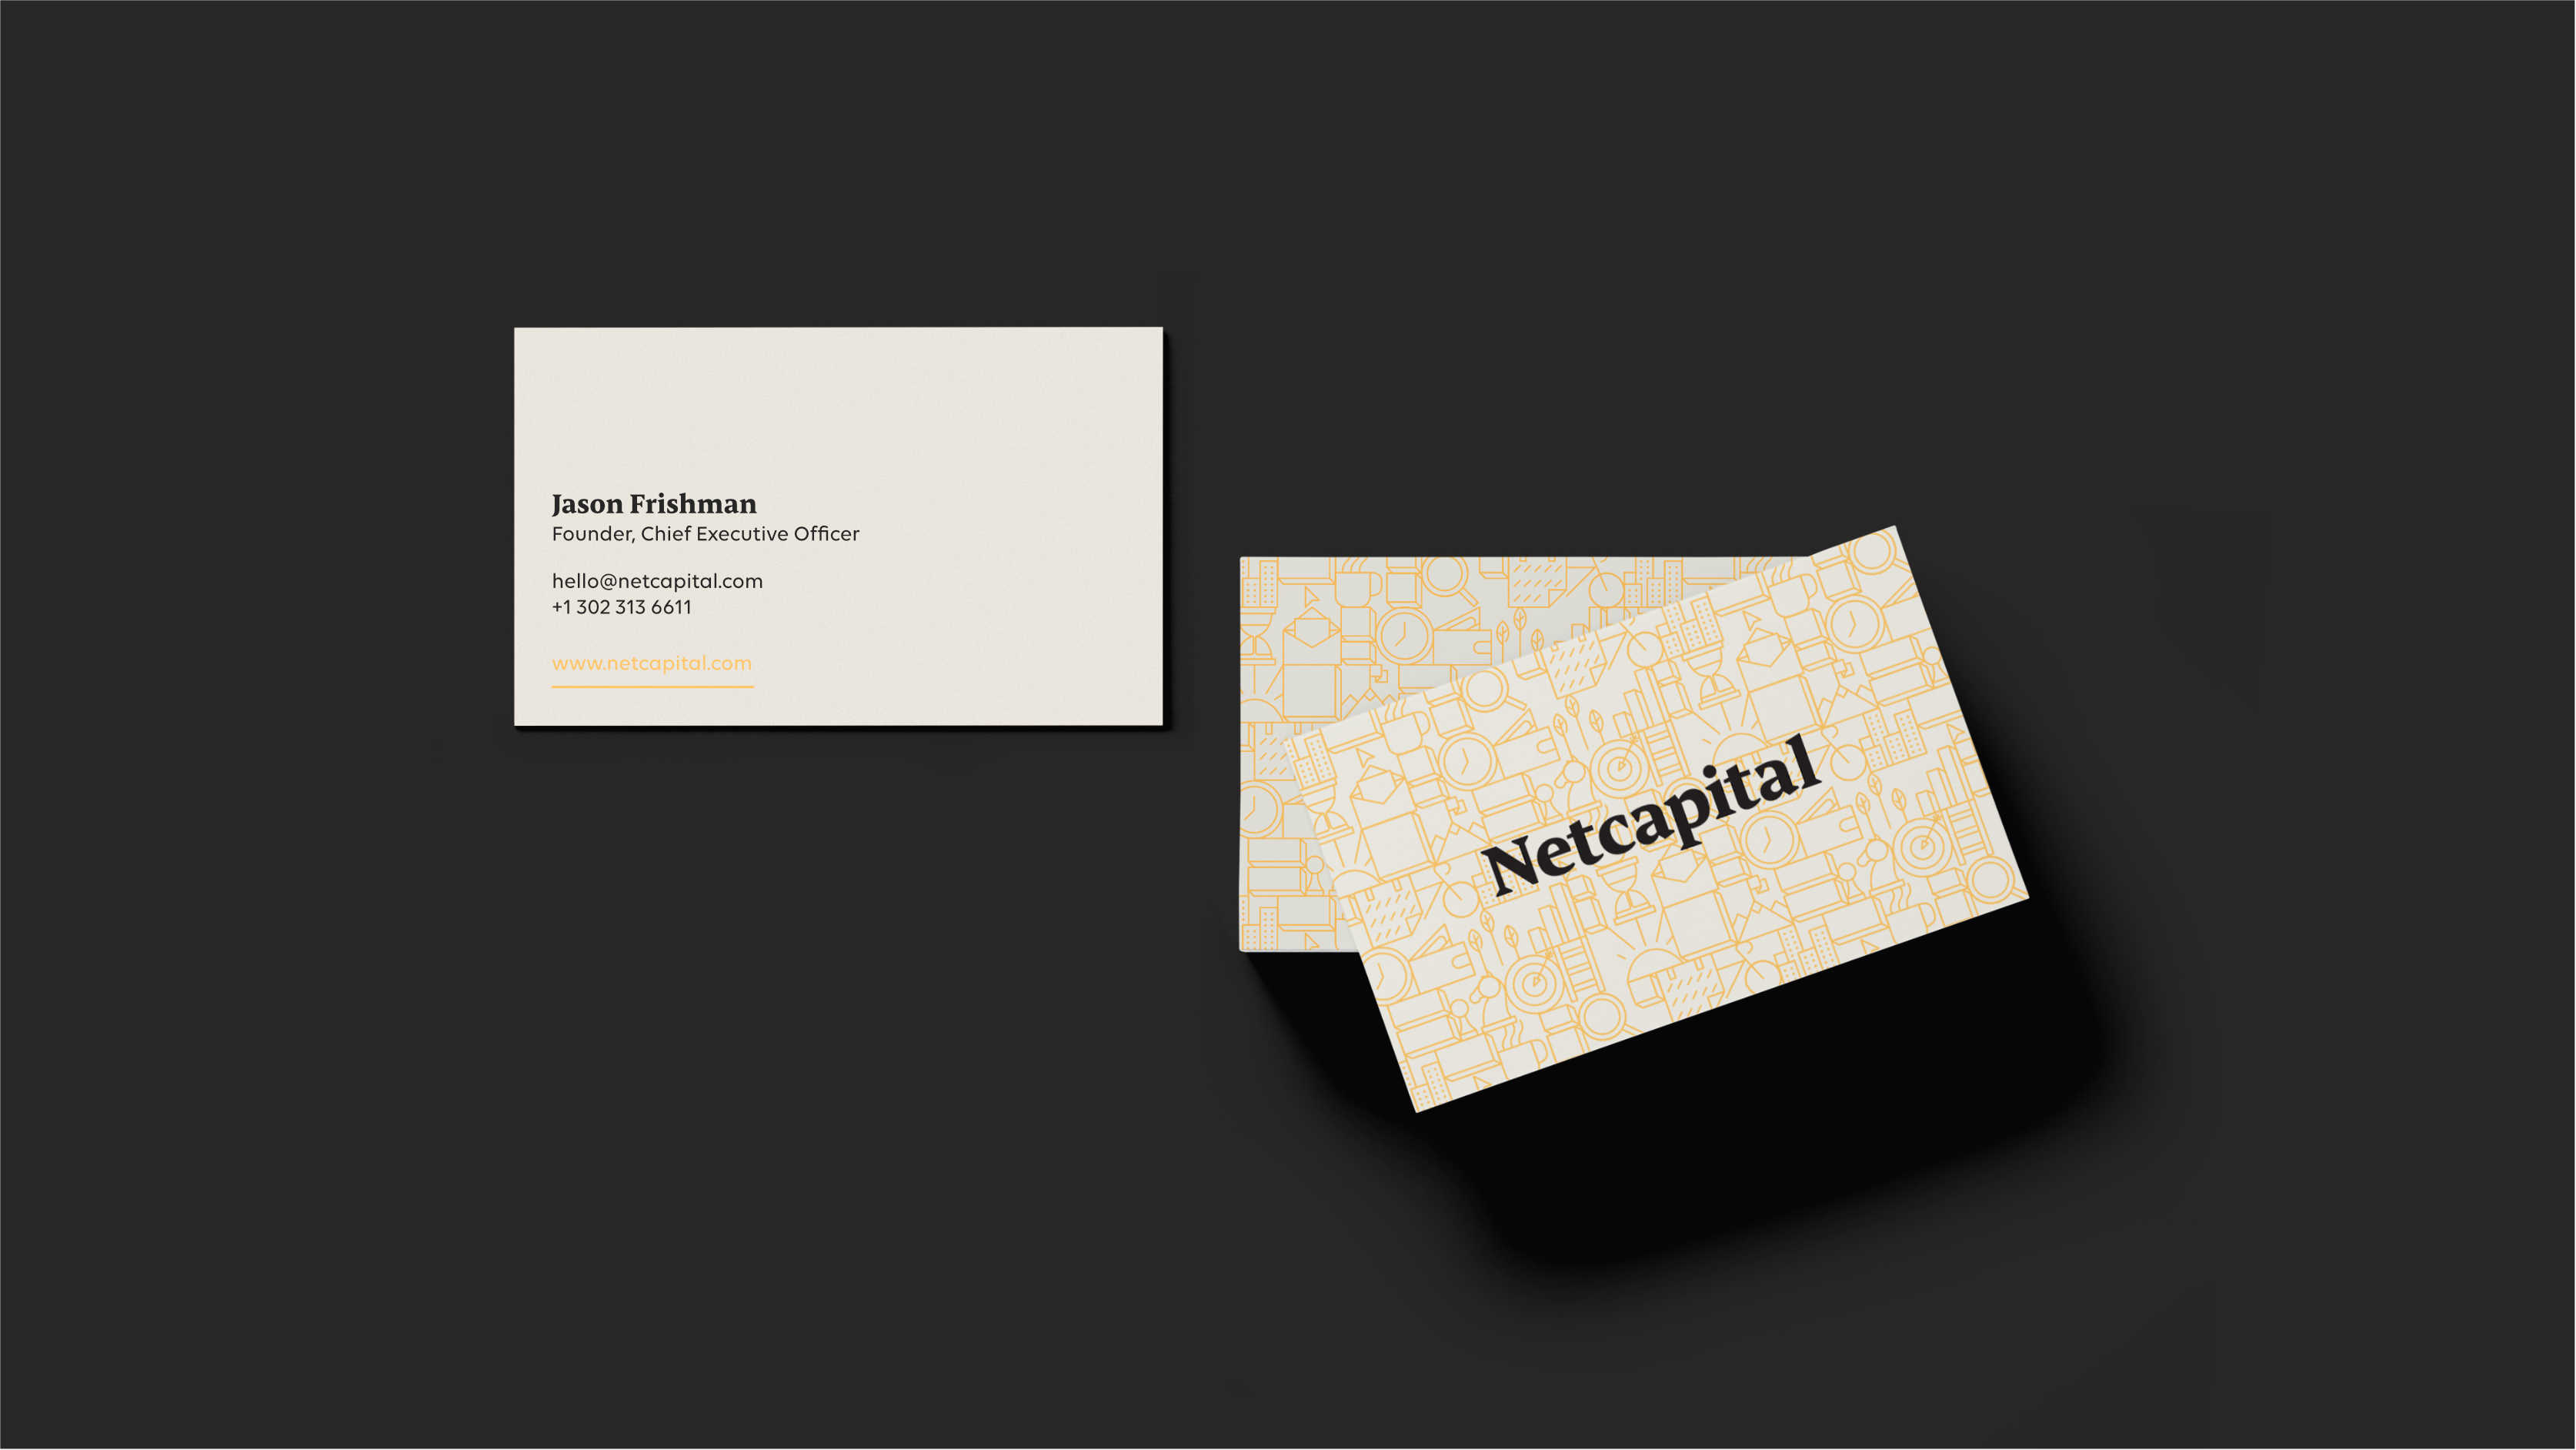 Netcapital business card design.